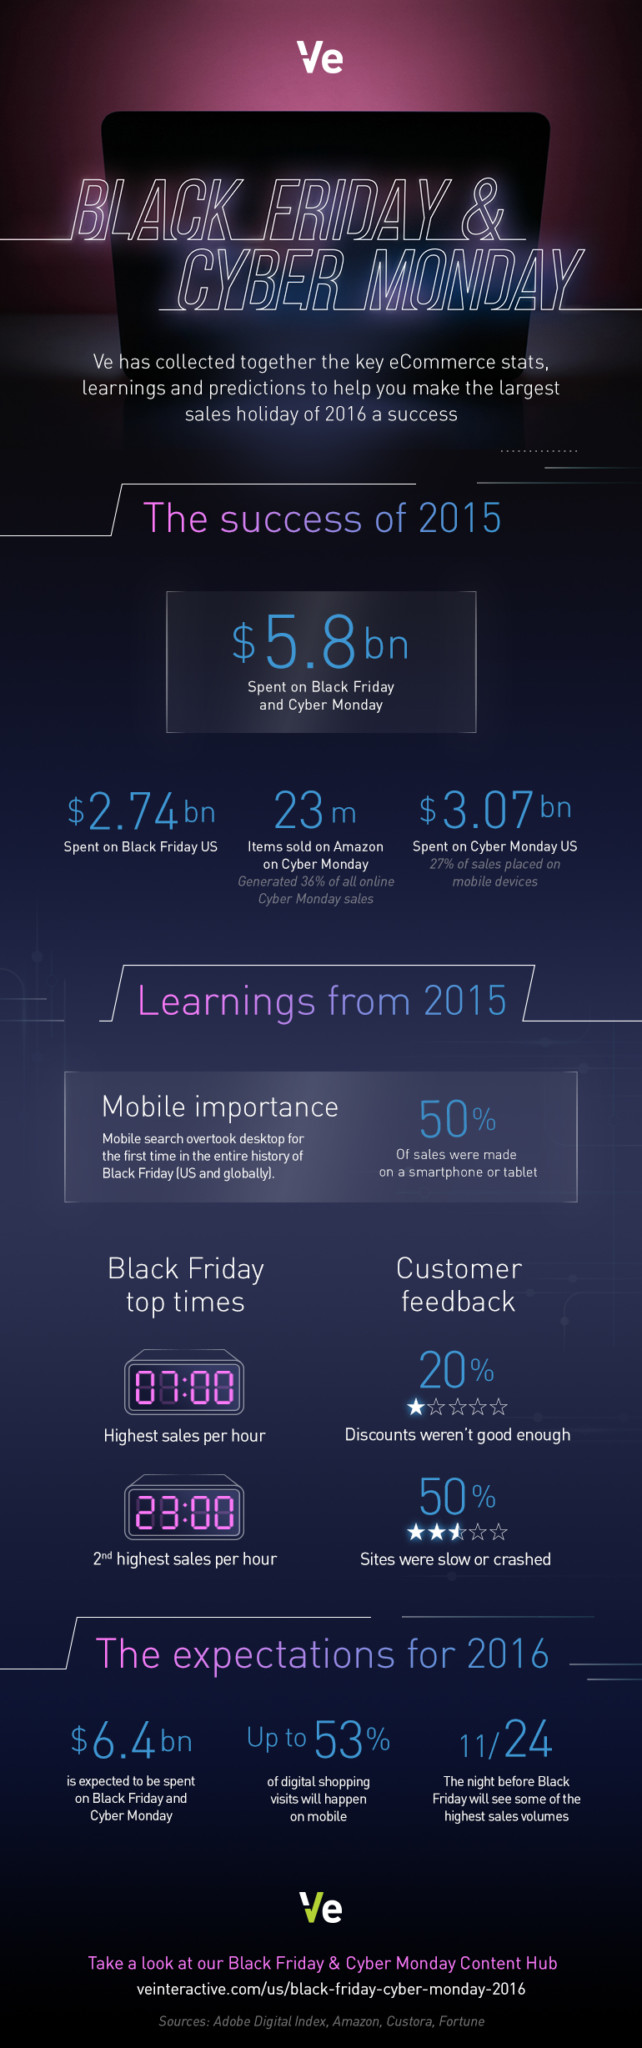 Black Friday_stats